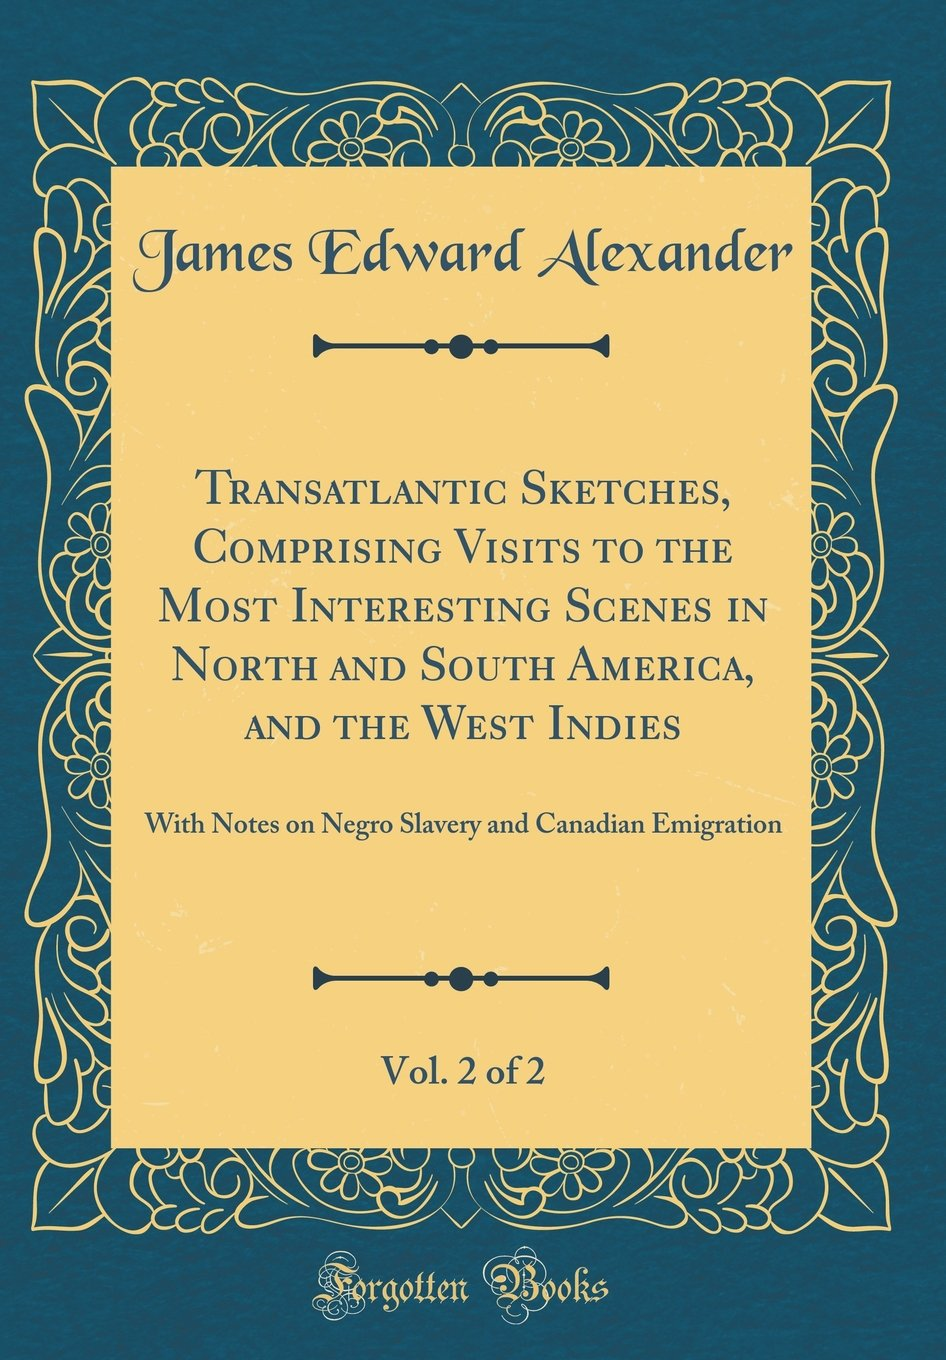 Transatlantic Sketches, Comprising Visits to the Most Interesting Scenes in North and South America, and the West Indies, Vol. 2 of 2: With Notes on ... and Canadian Emigration (Classic Reprint) pdf epub